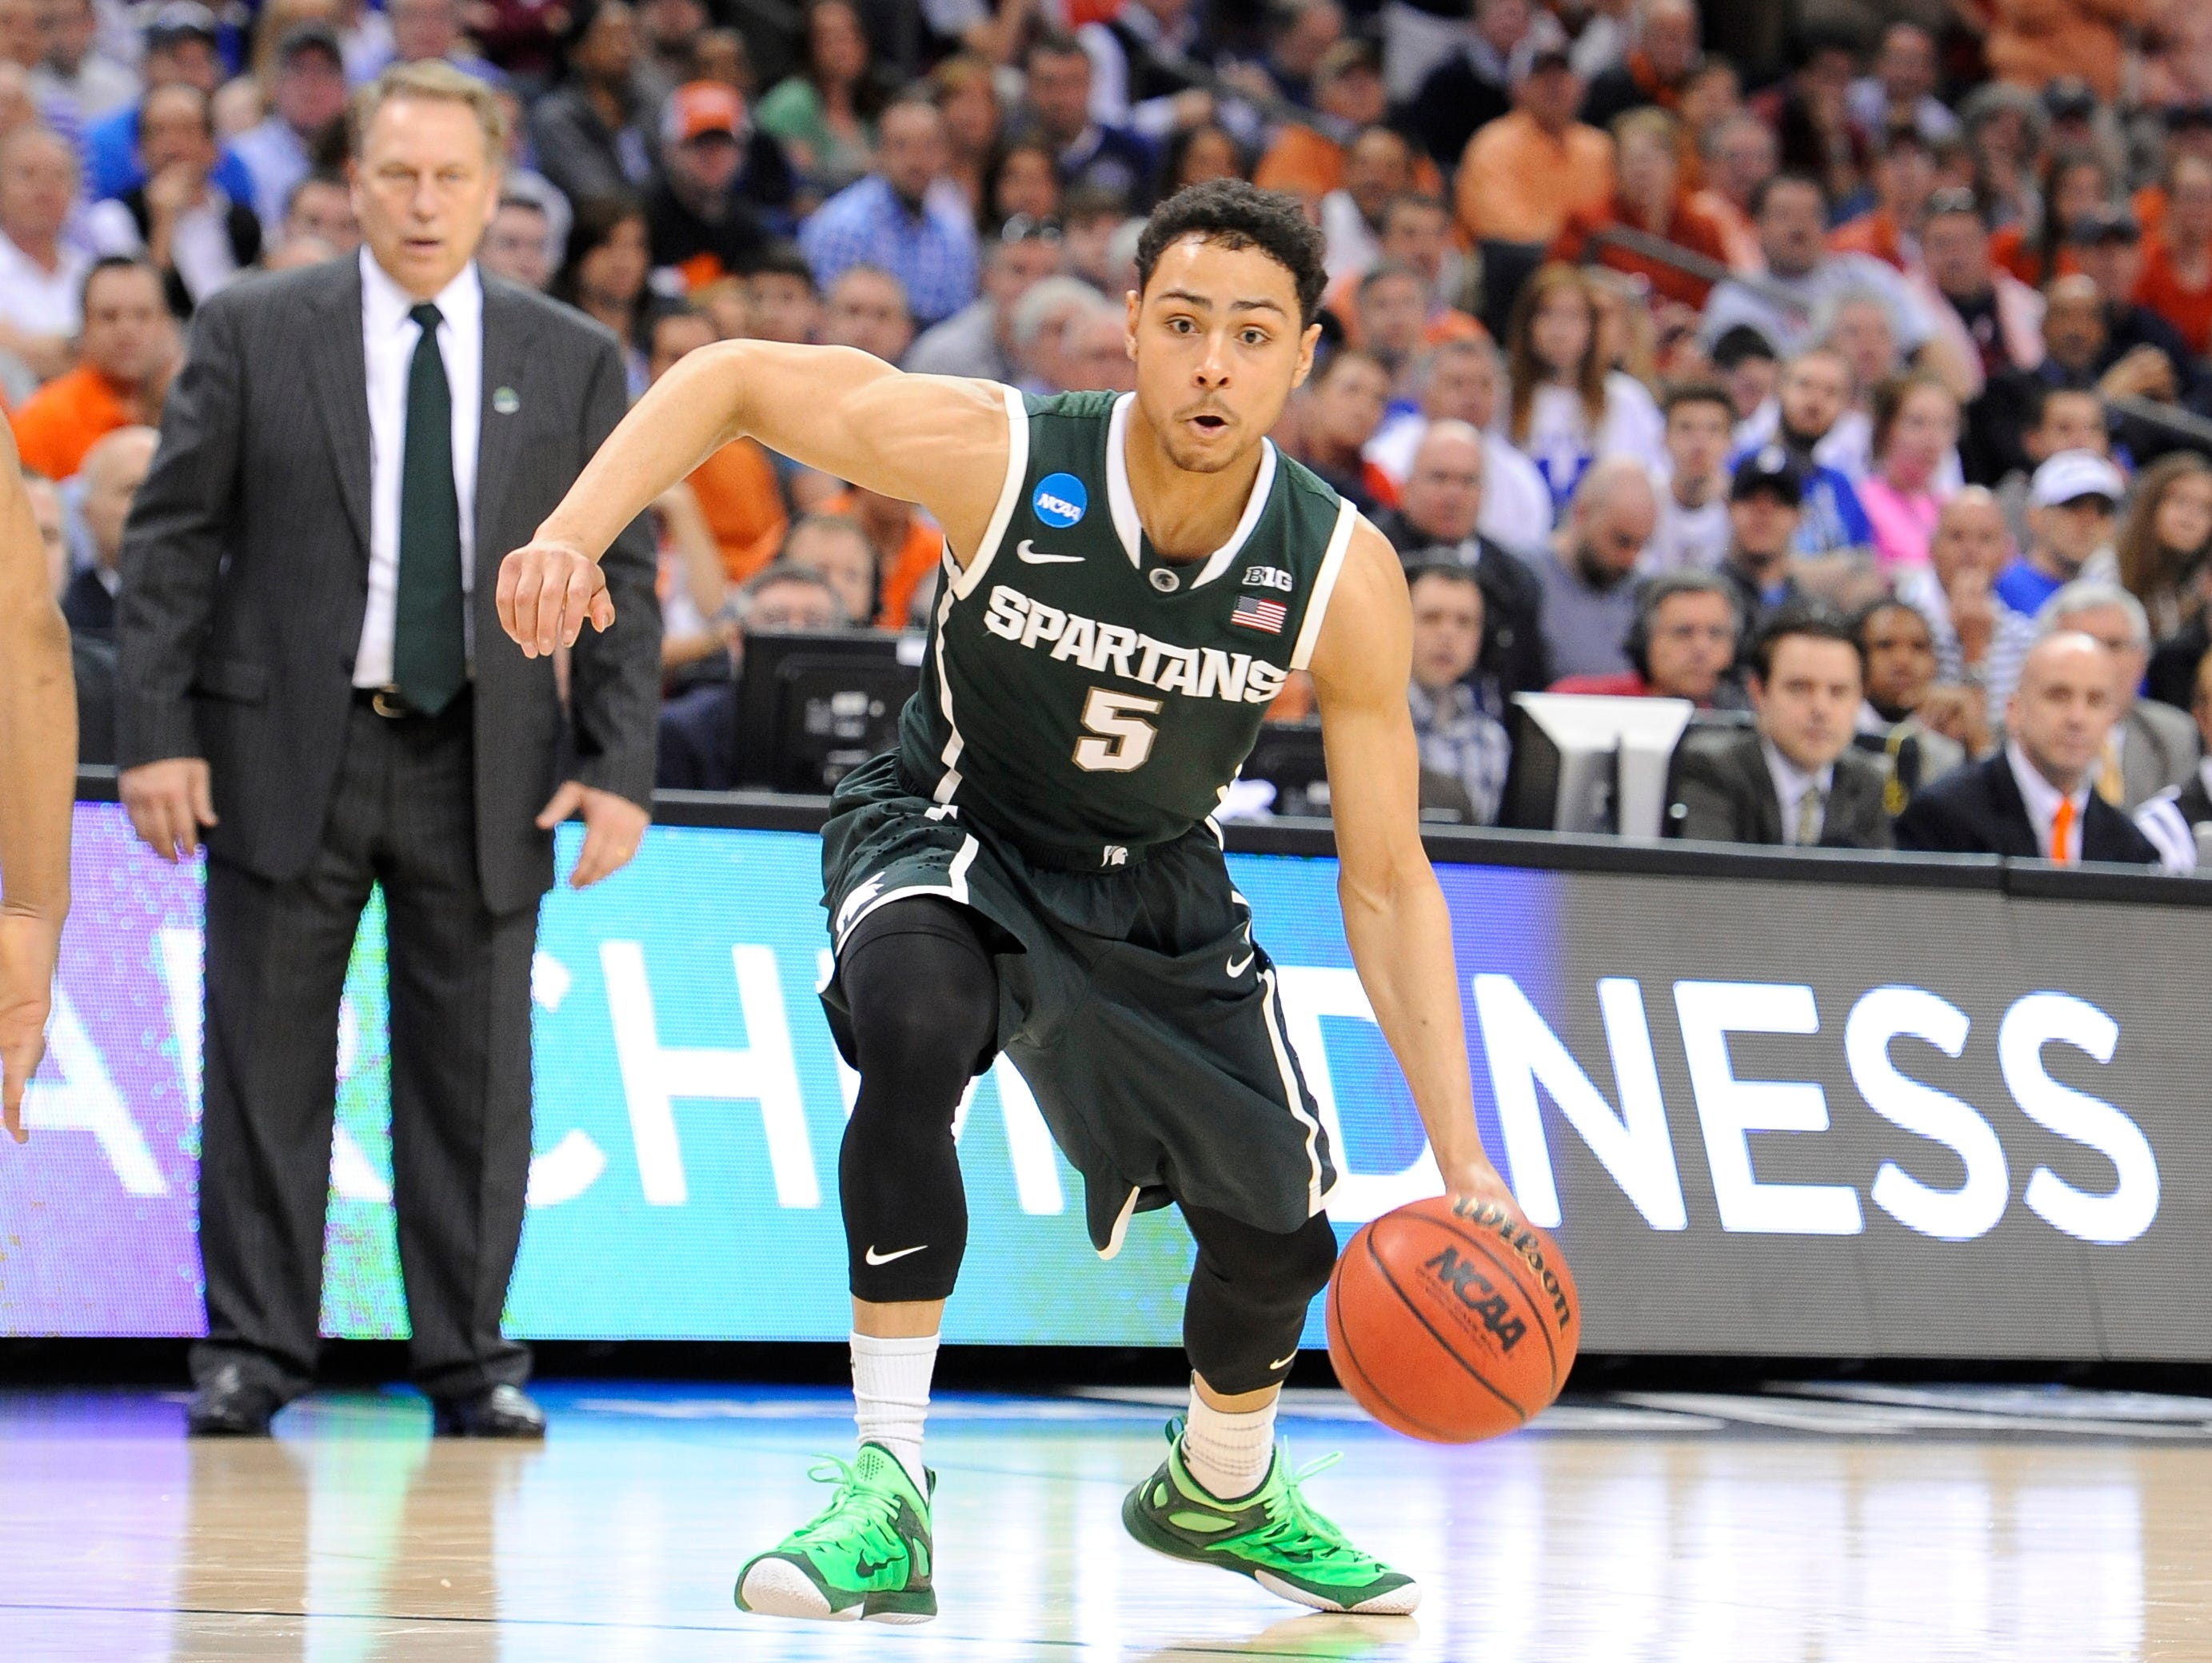 MSU's Bryn forbes heads to the hoop as Tom Izzo watches against Virginia during their NCAA game in Charlotte, NC Sunday 3/22/2015.